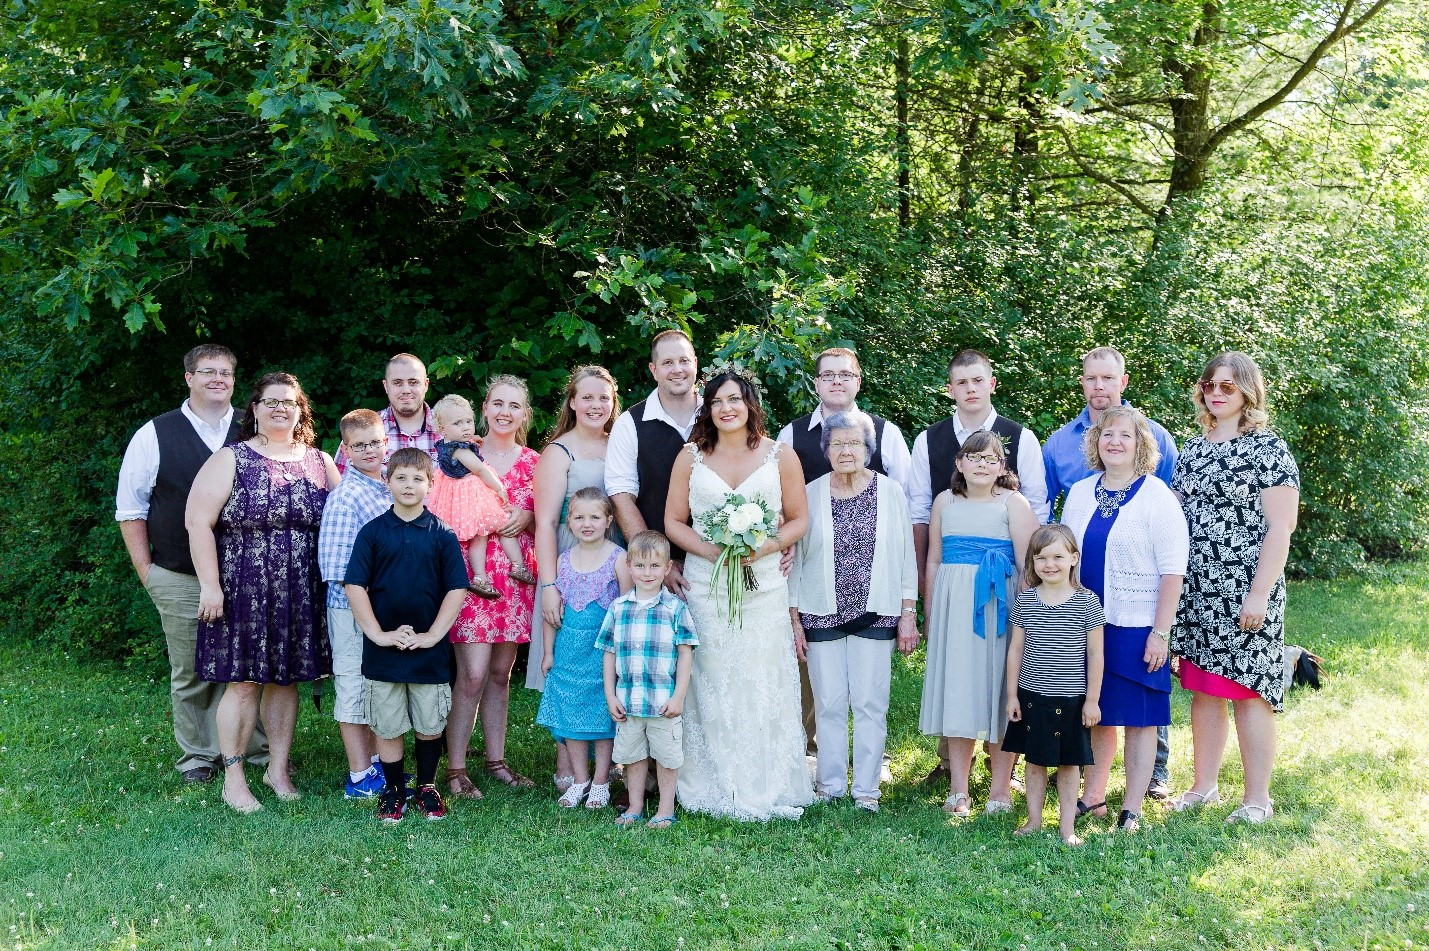 Celebrating Family on our wedding day! Pictures with Kurt's siblings, step-siblings, nieces, nephews, mom, and grandma